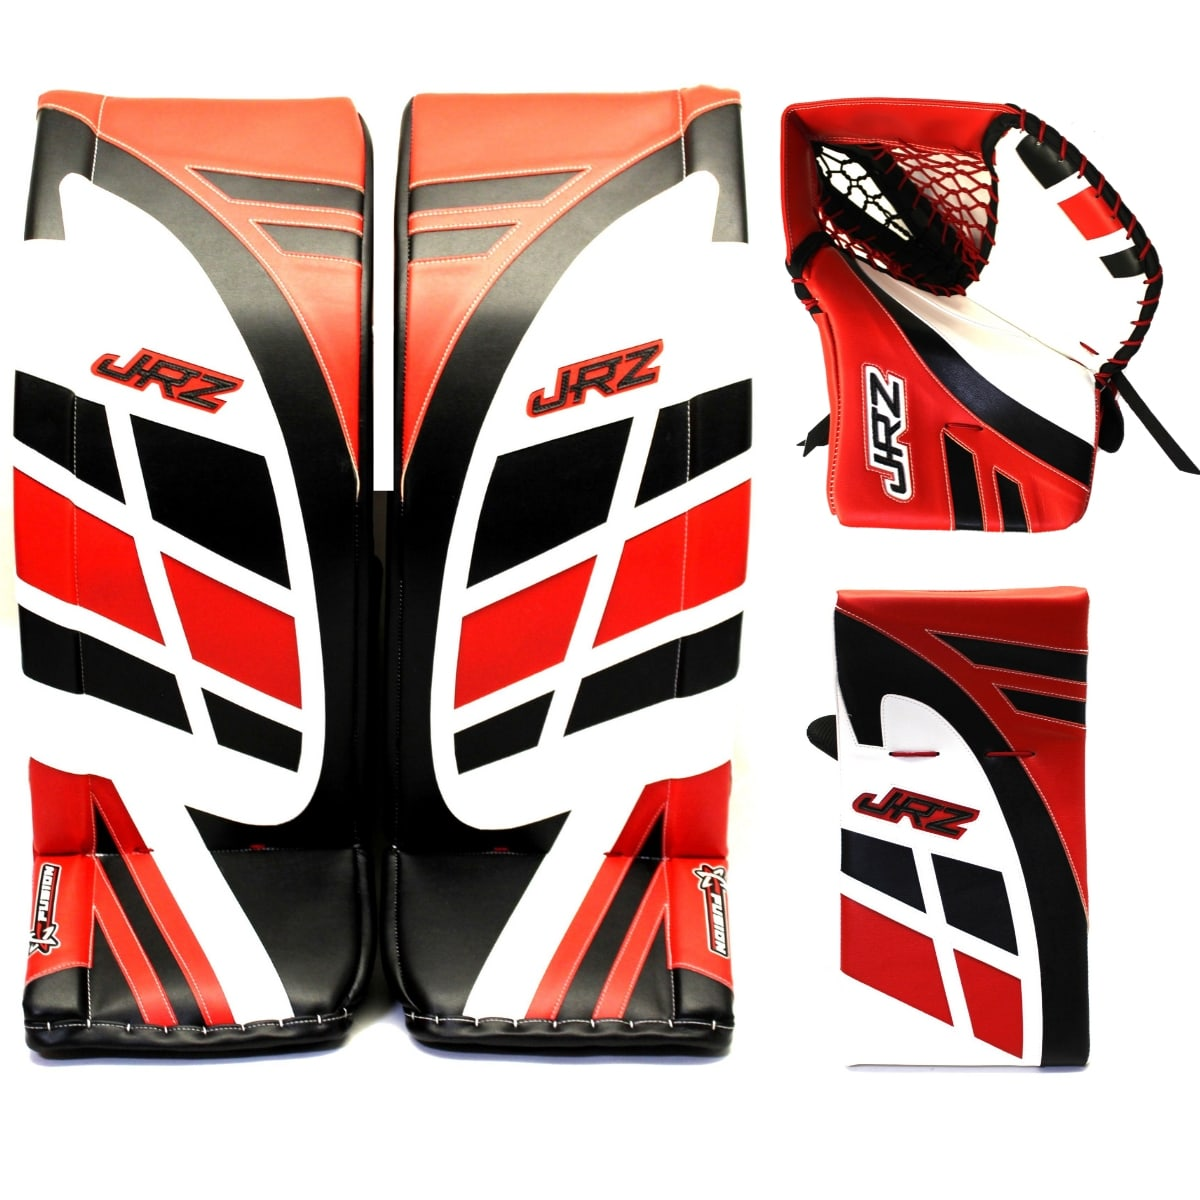 Fusion FZ-1 hockey goalie gear